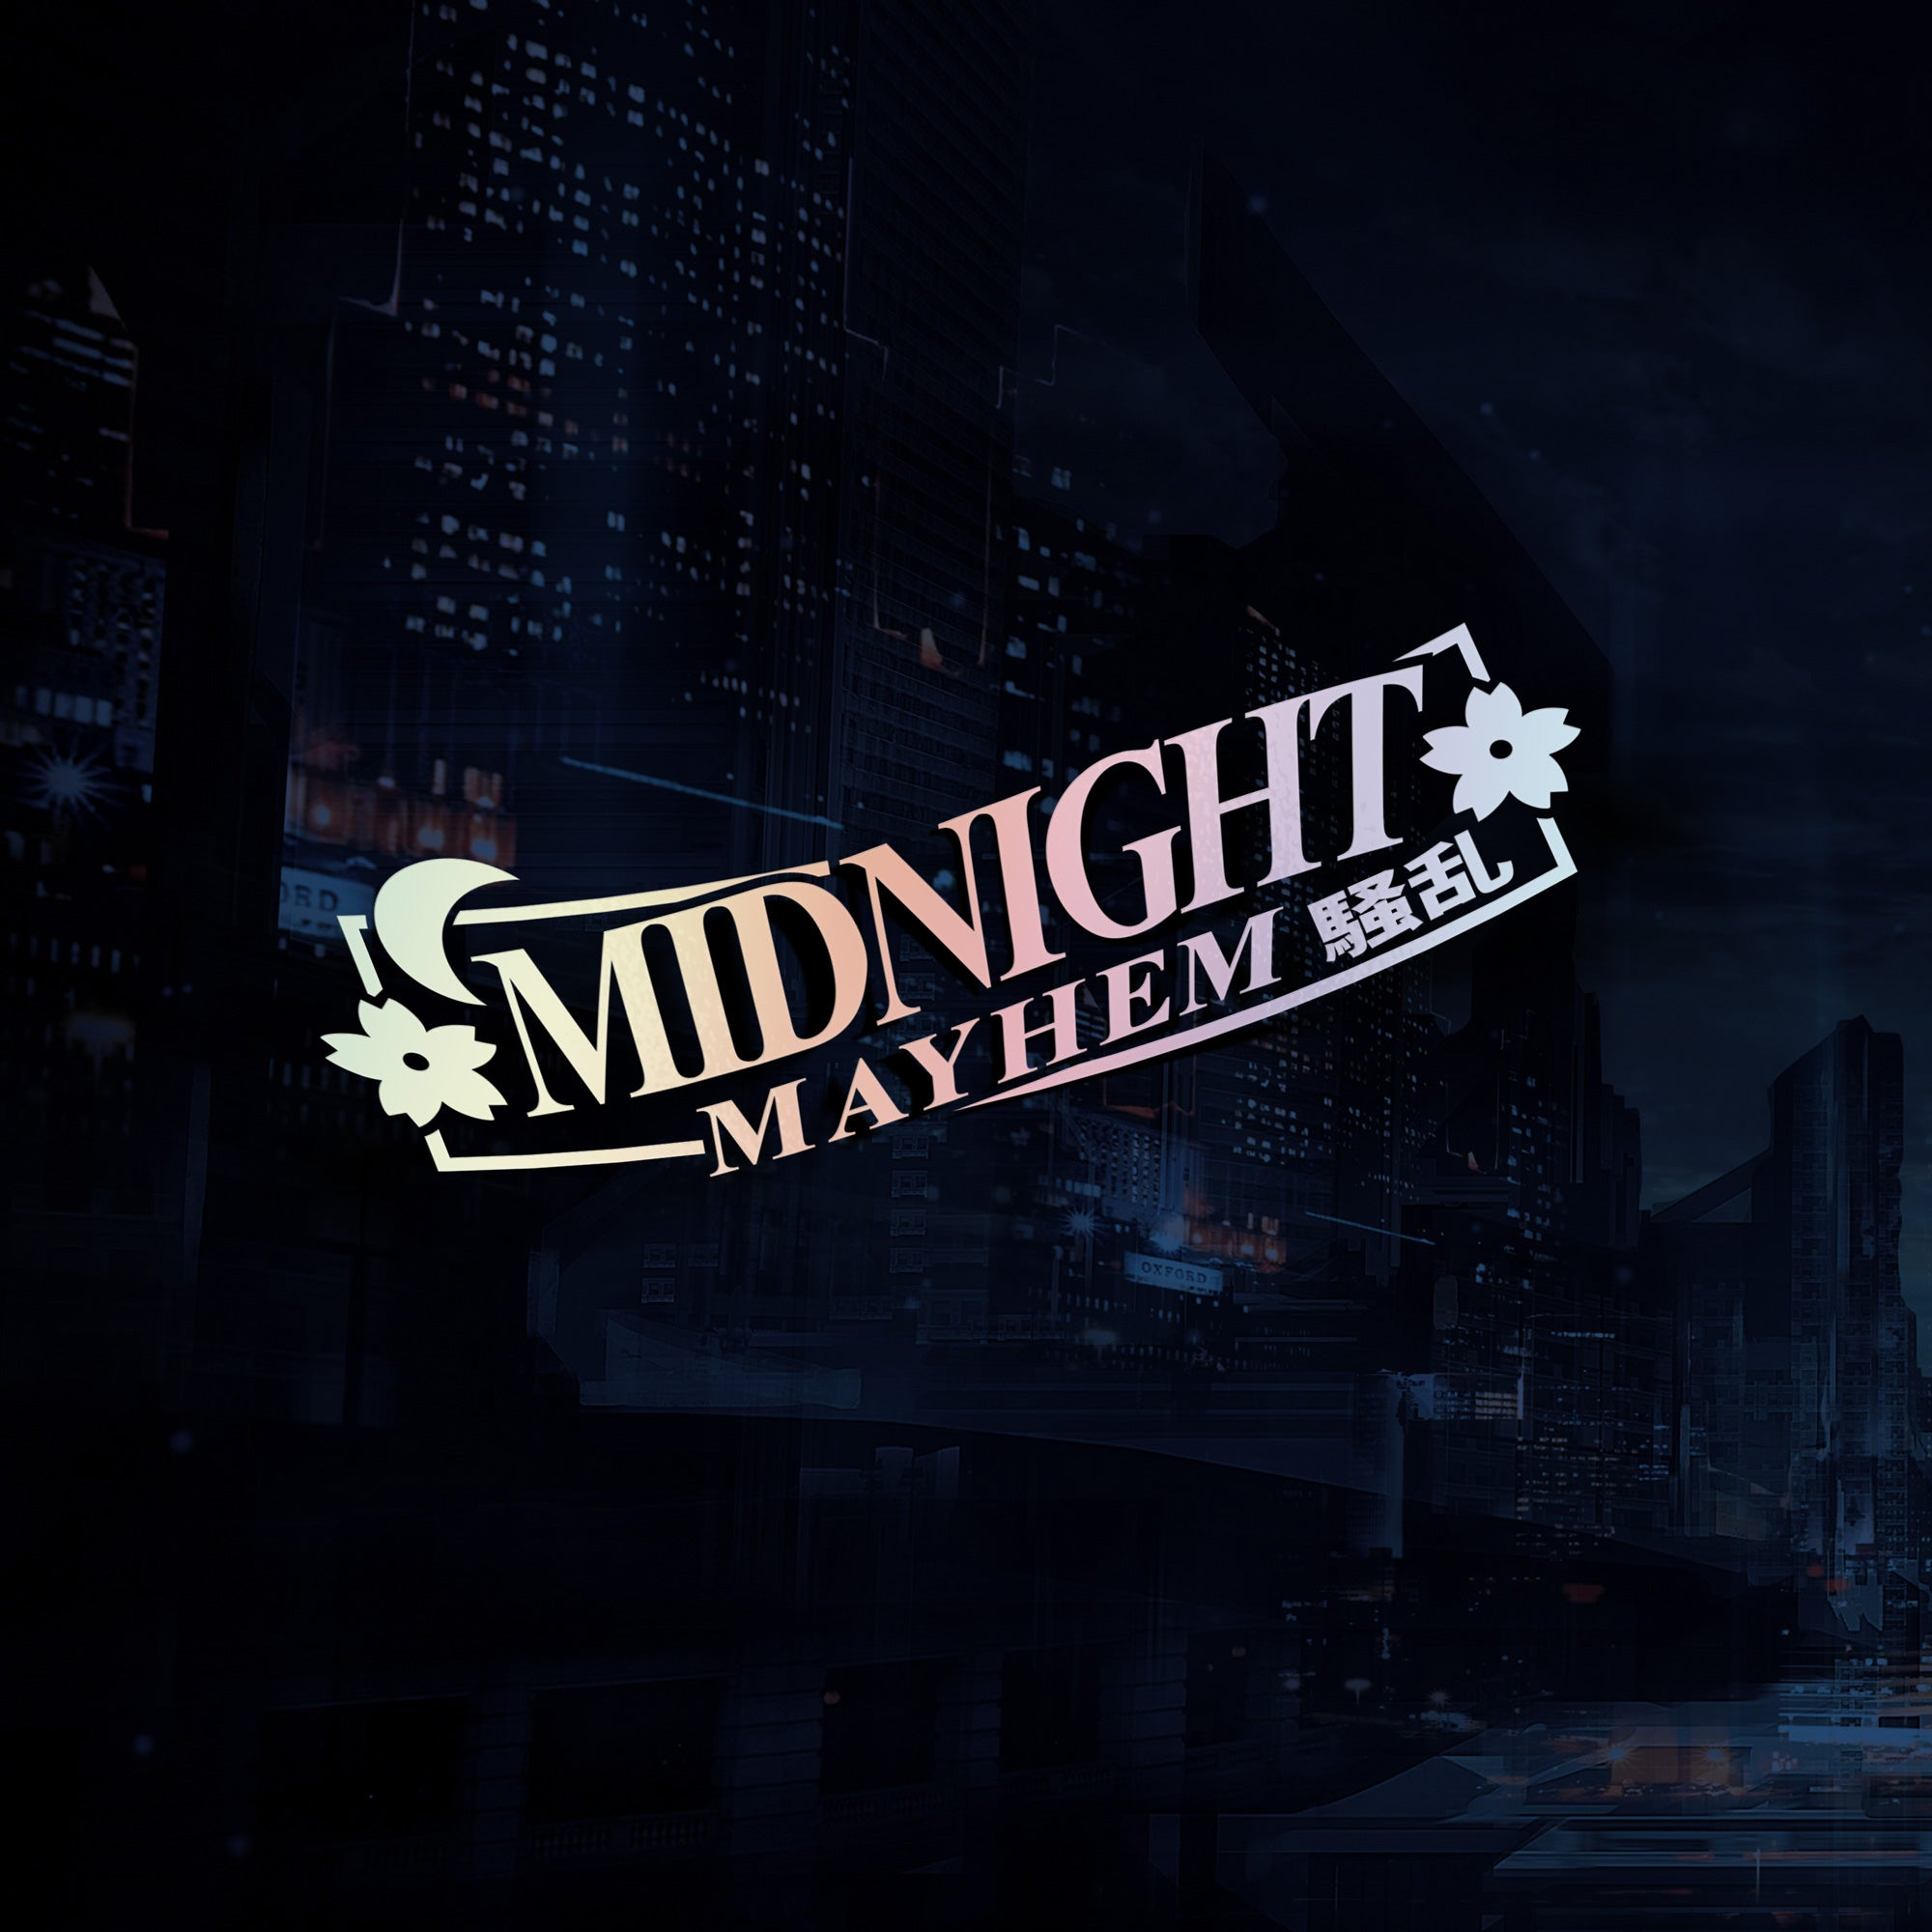 Midnight Mayhem v2 - VINYL HOUZE